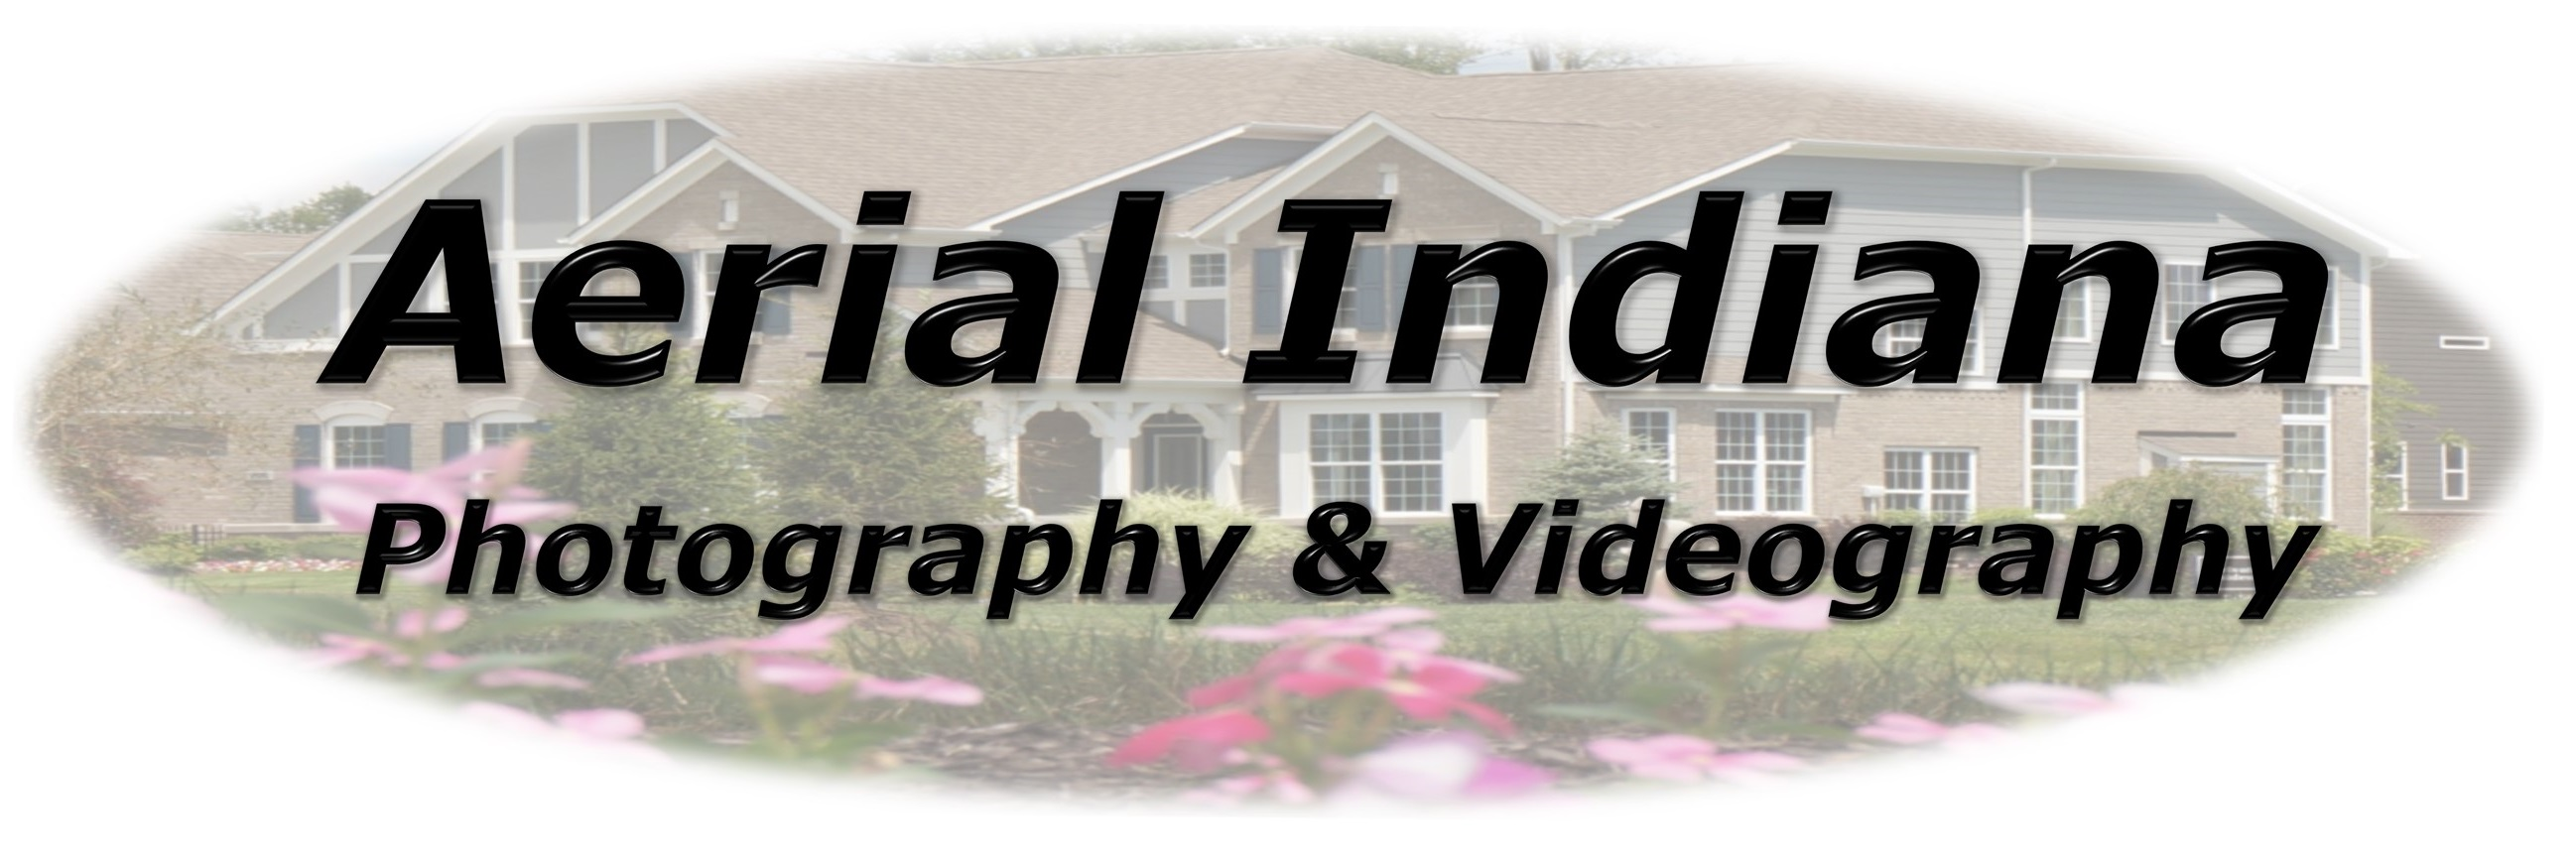 aerial indiana drone uav uas imagery photography video pilot logo best